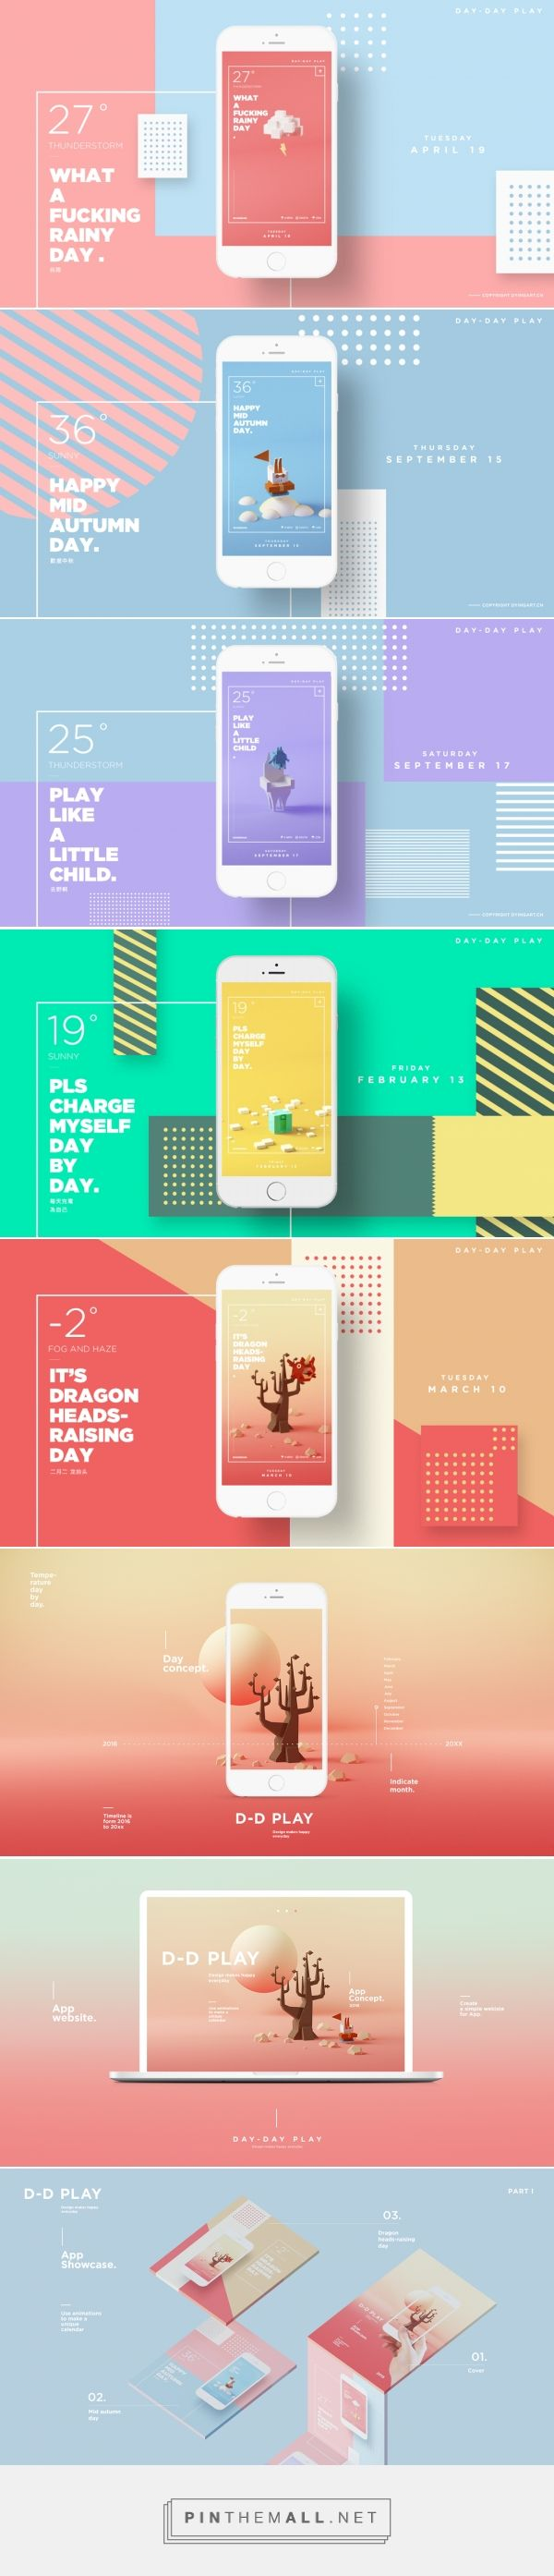 d d play app design abduzeedo design inspiration - App Design Ideas